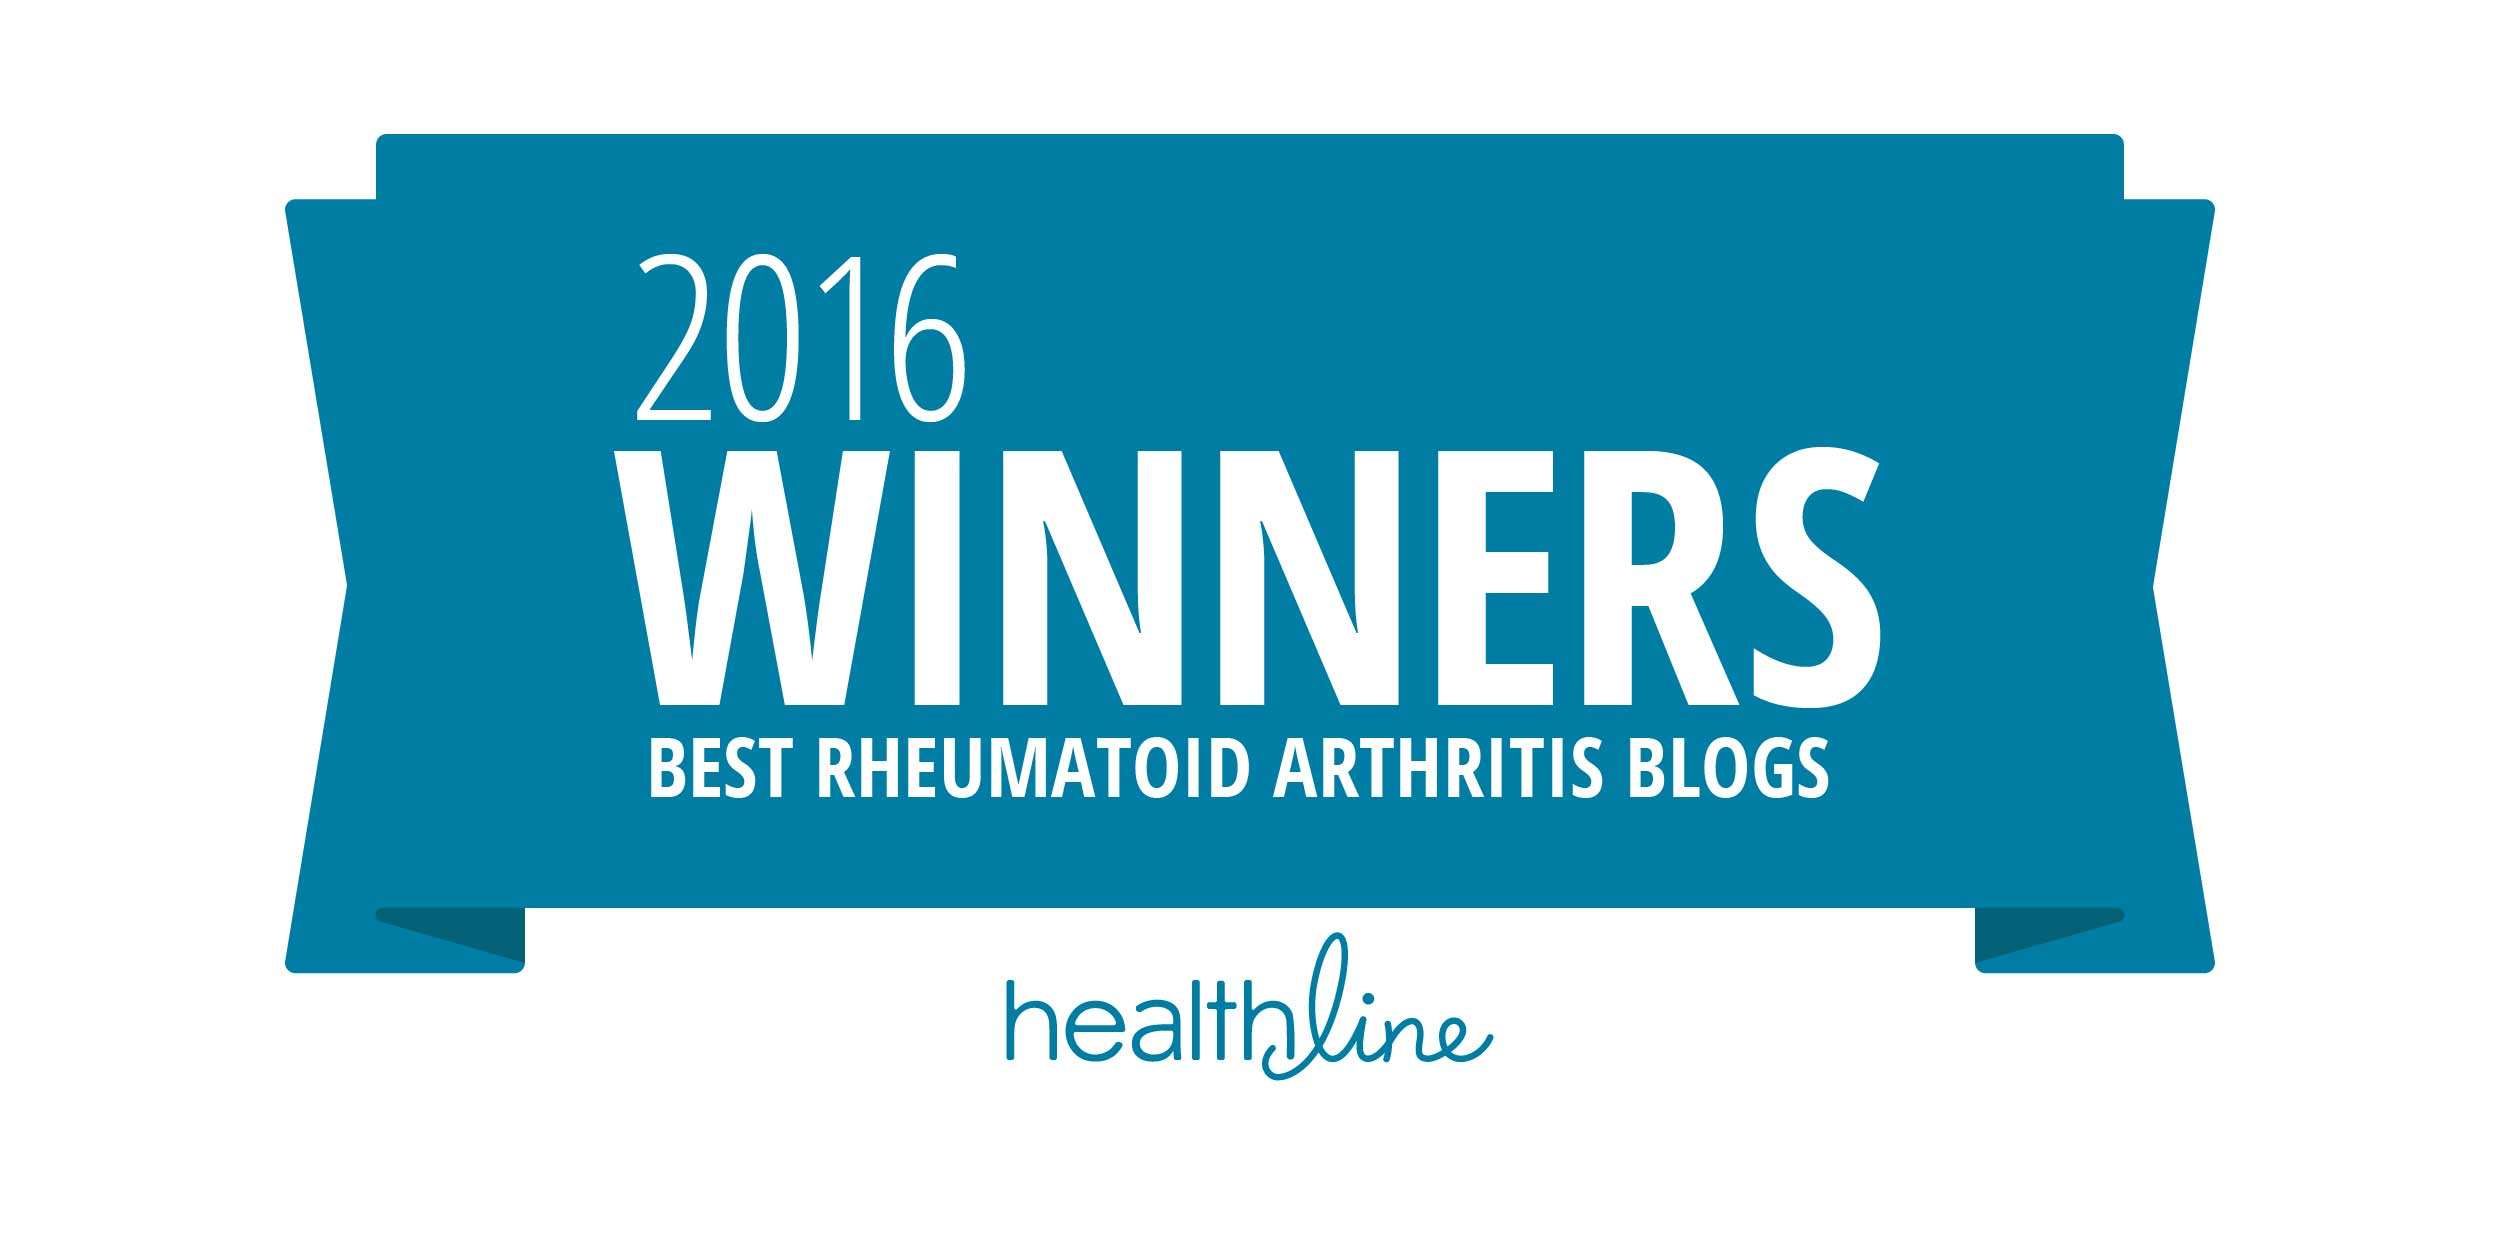 We're in the top 17 rheumatoid arthritis blogs for 2016